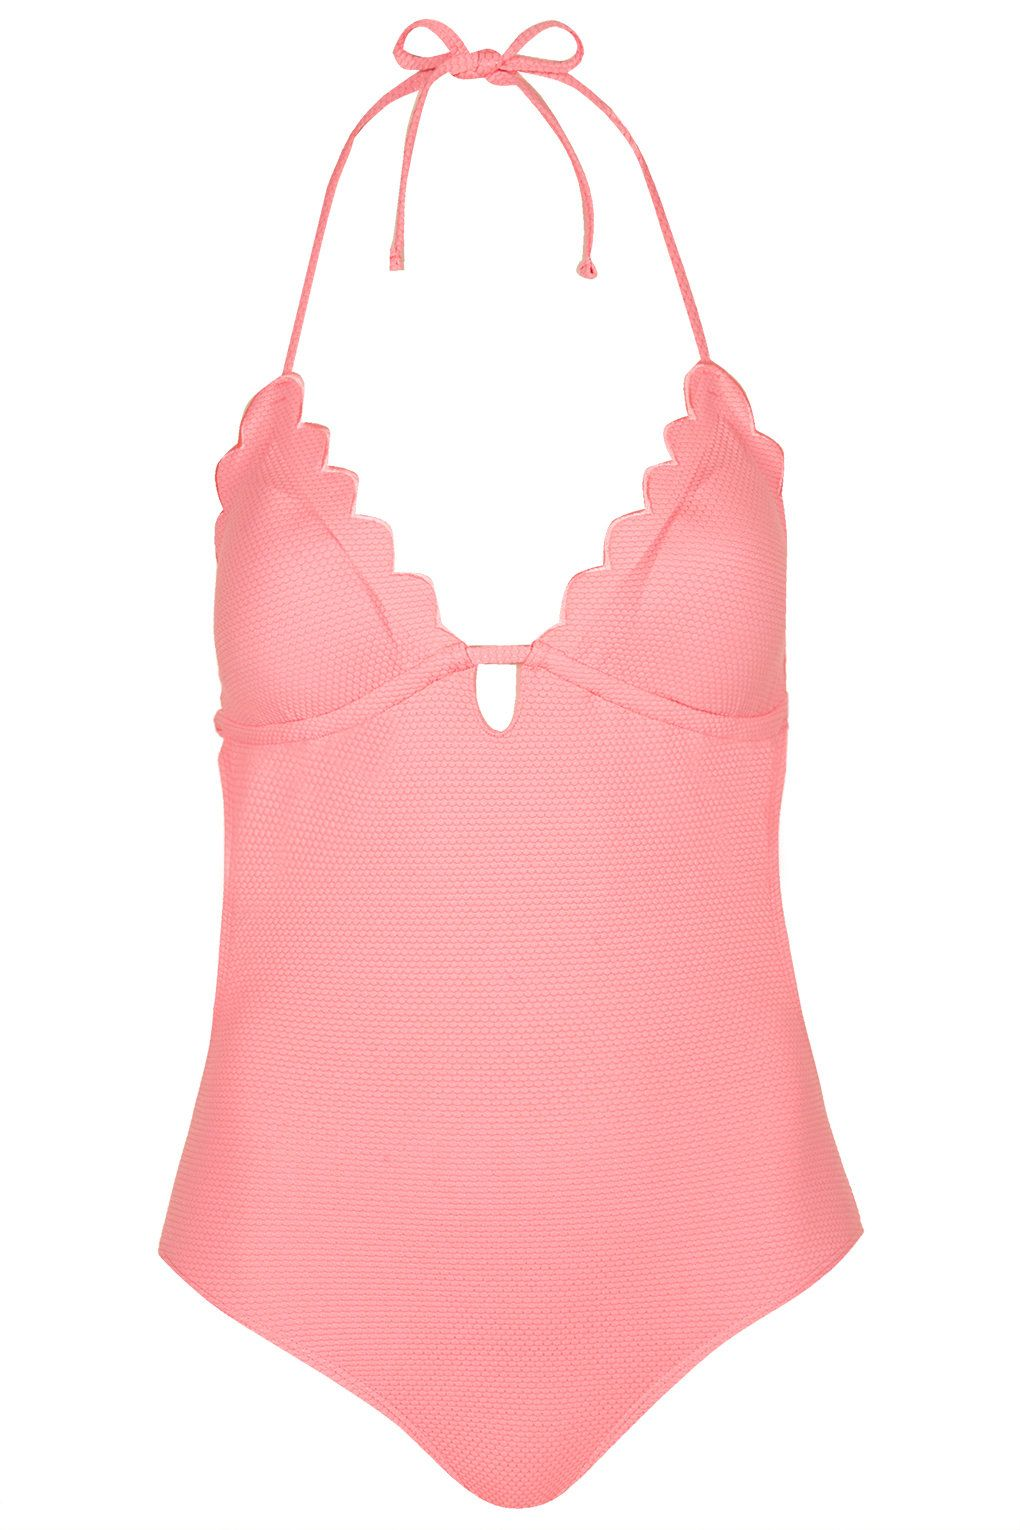 3affc5230b4 PETITE Pink Scallop Swimsuit - Topshop | Summer | Swimsuits ...